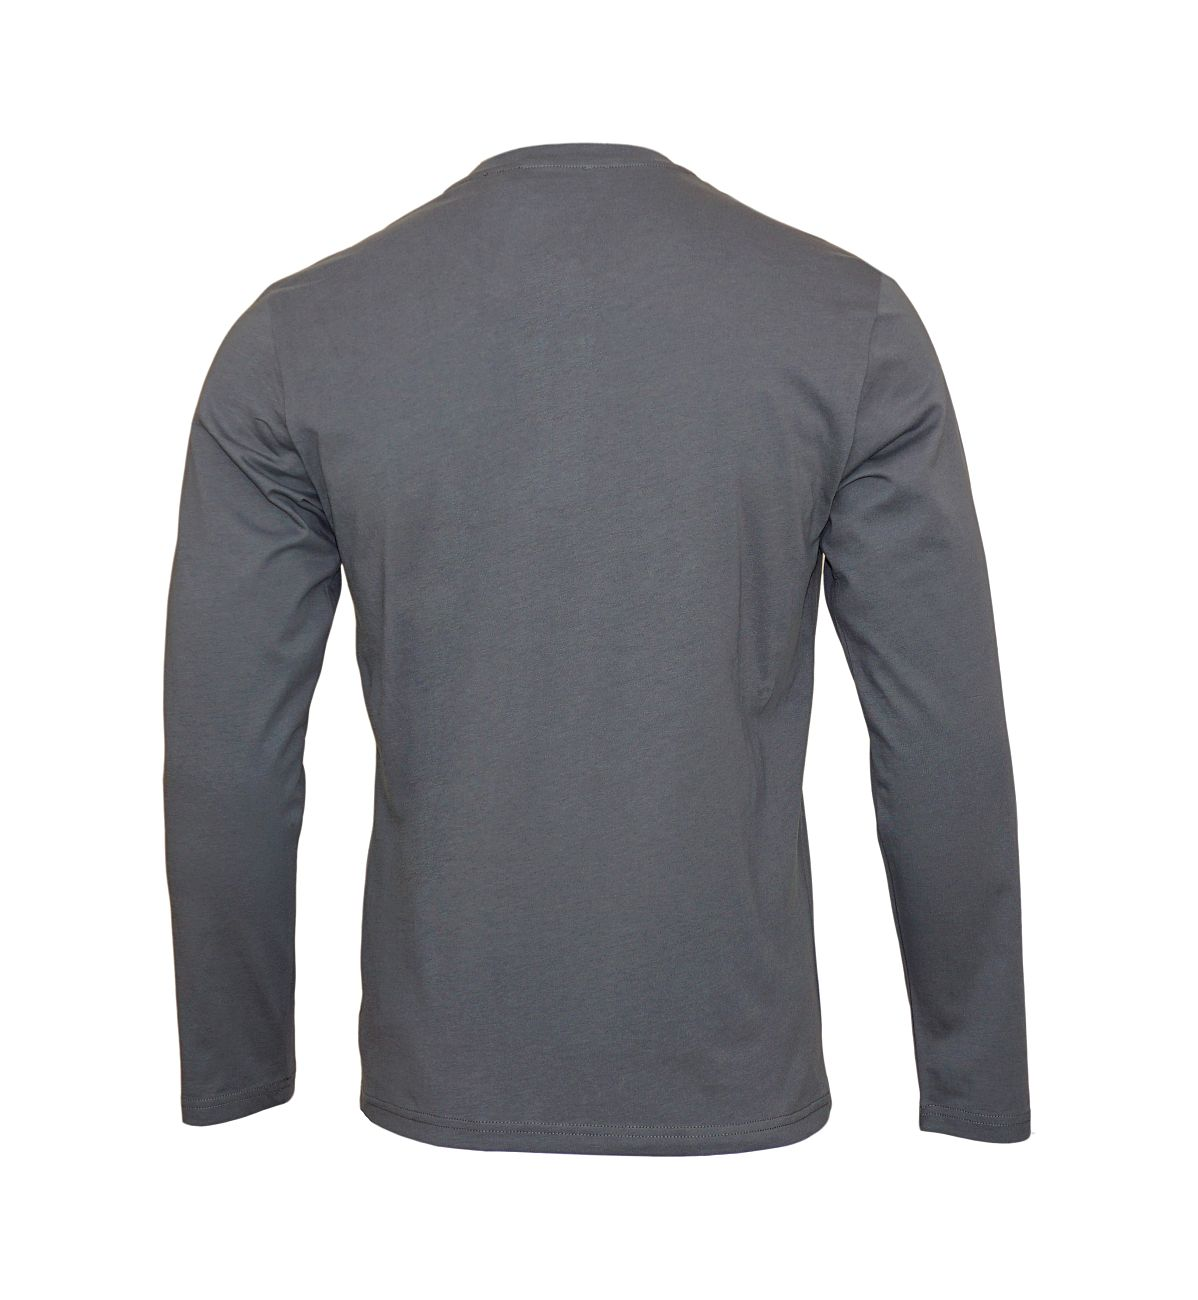 Emporio Armani Longsleeve Henley Sweater 111817 8A576 00044 ANTRACITE WX18-EAL